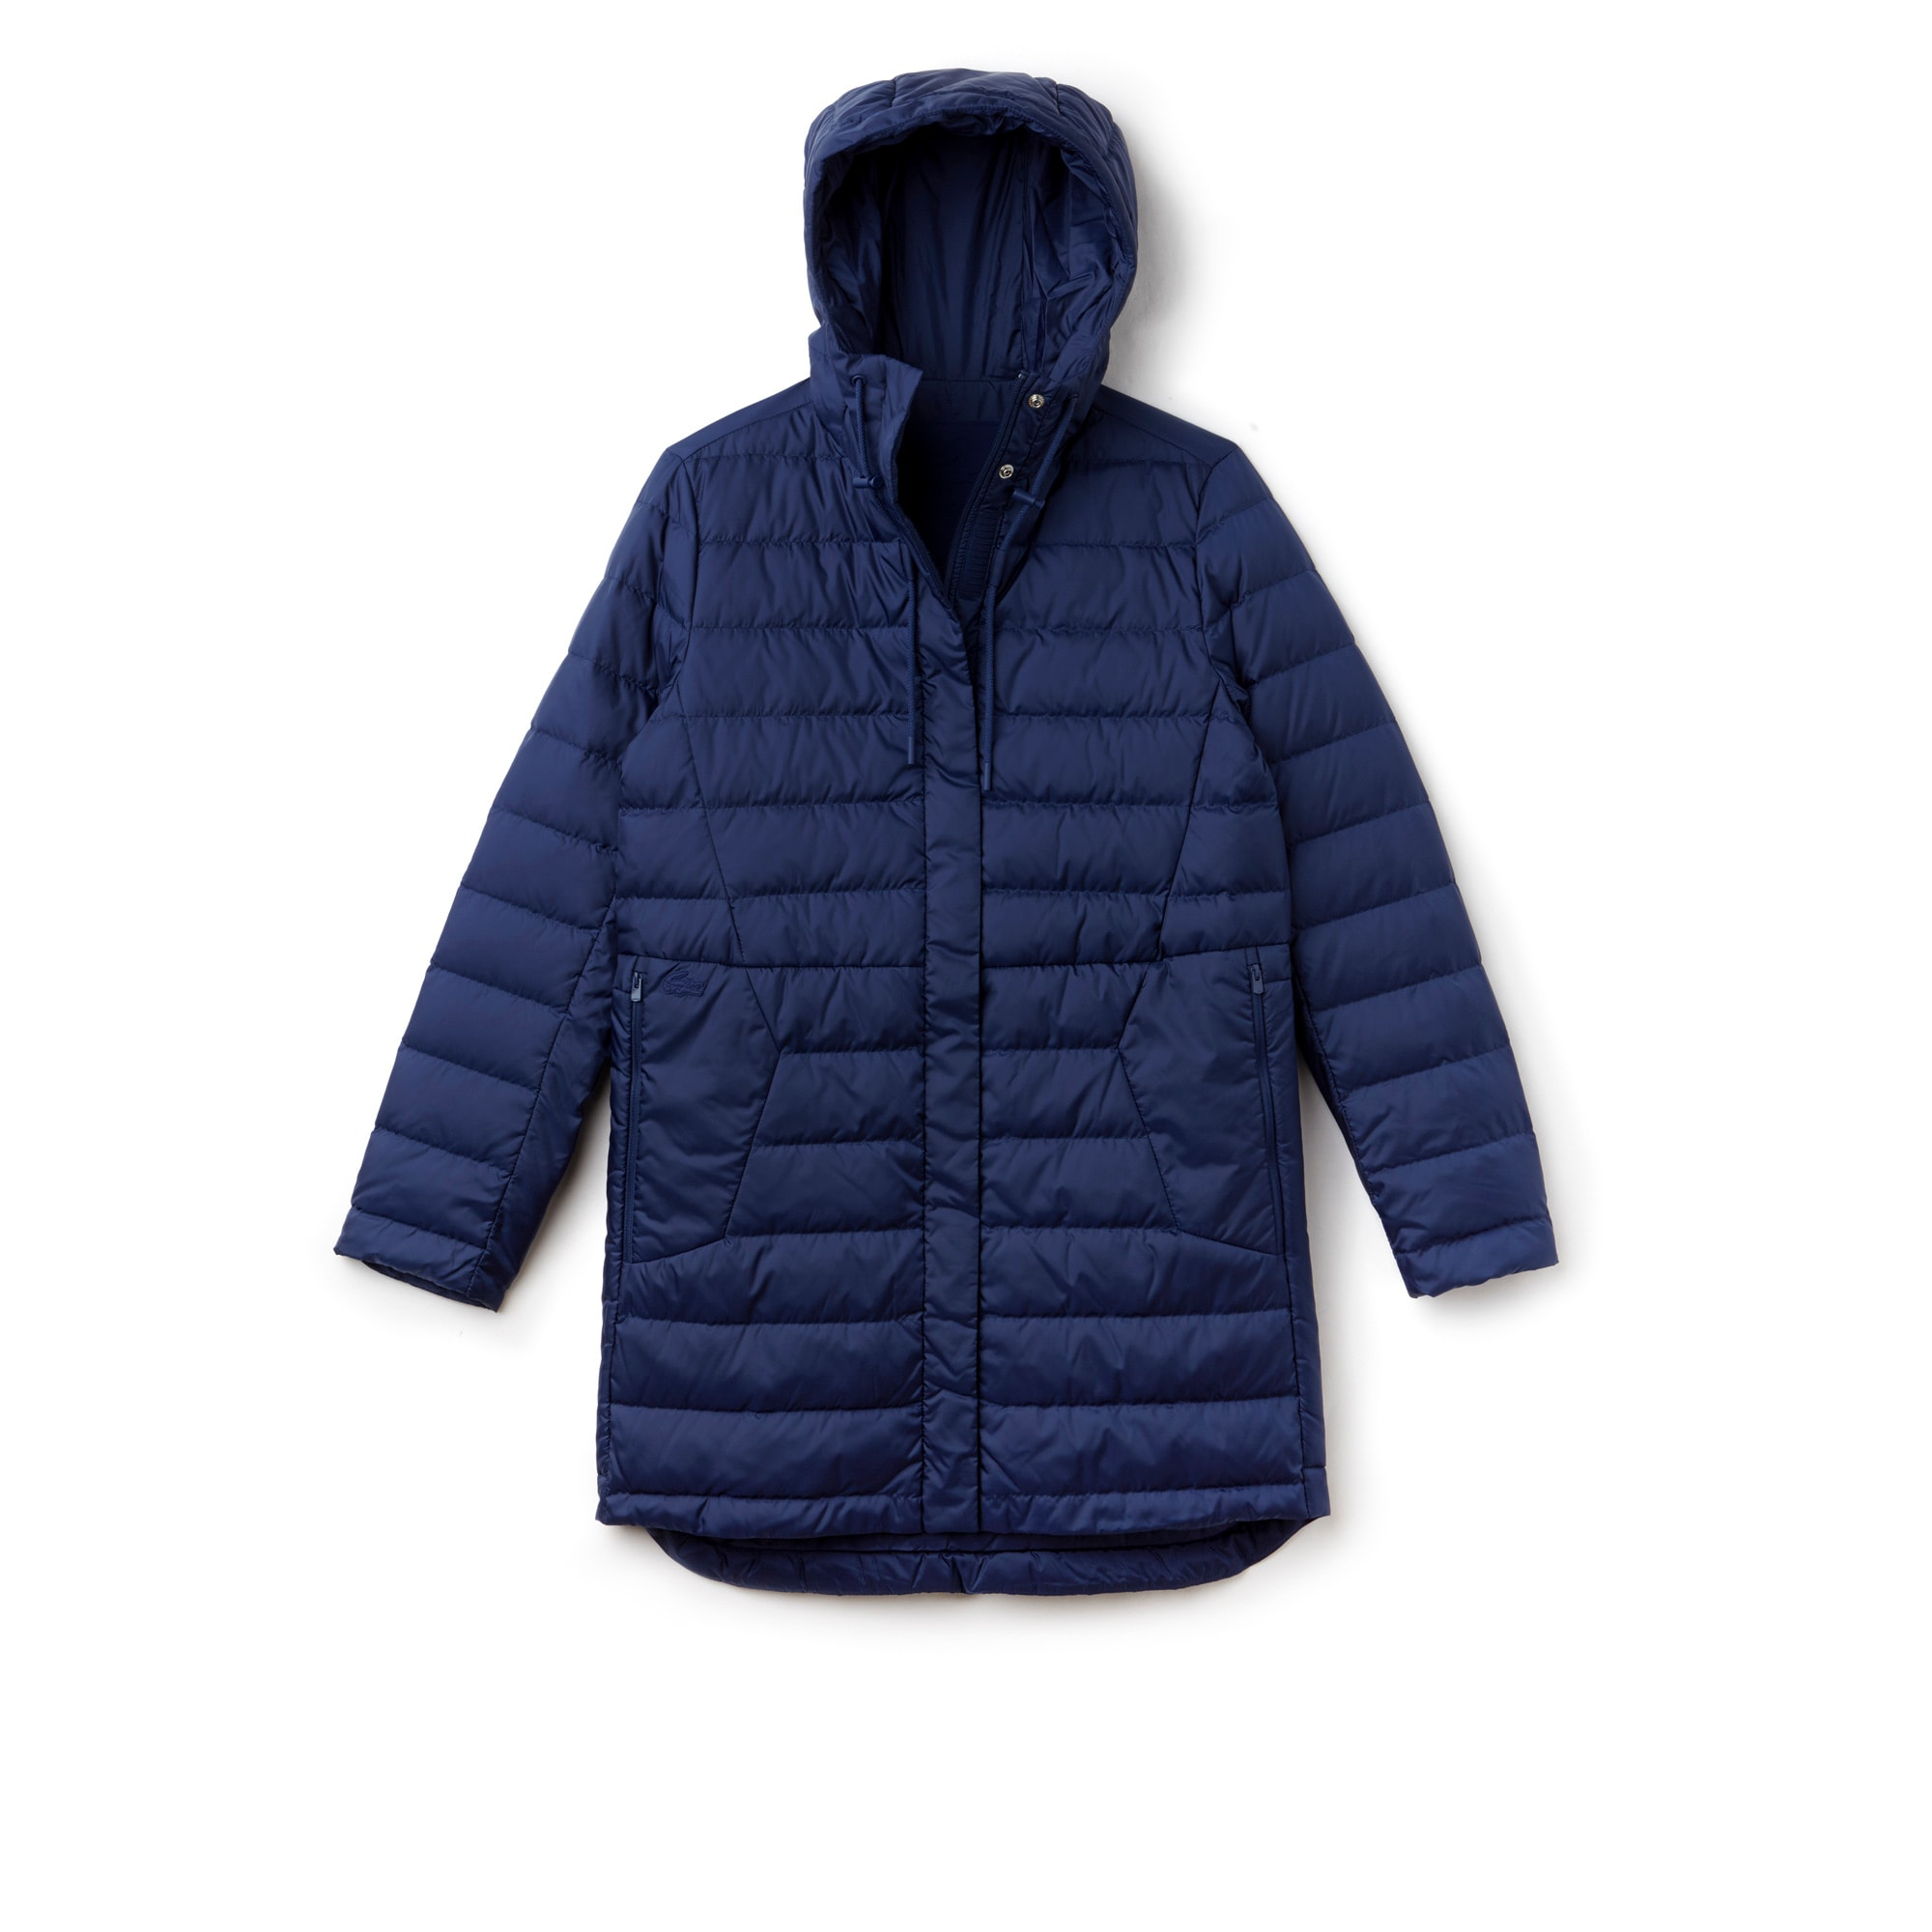 Women's Long Hooded Quilted Down Jacket | LACOSTE : quilted down jacket - Adamdwight.com